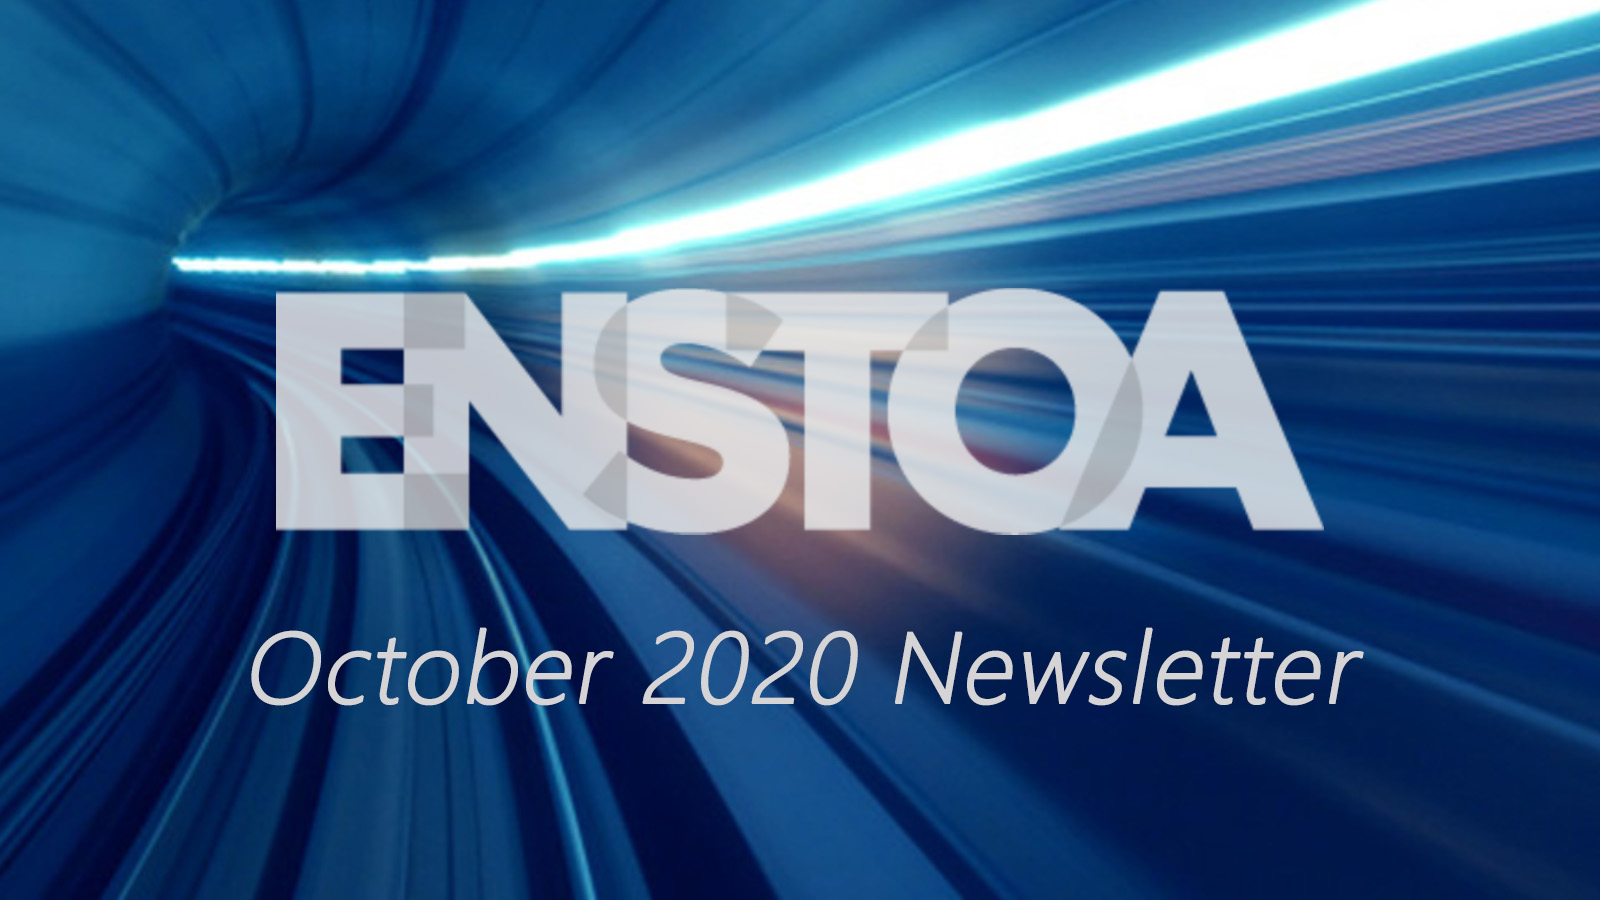 October 2020 Newsletter: BREAKING GLASS CEILINGS